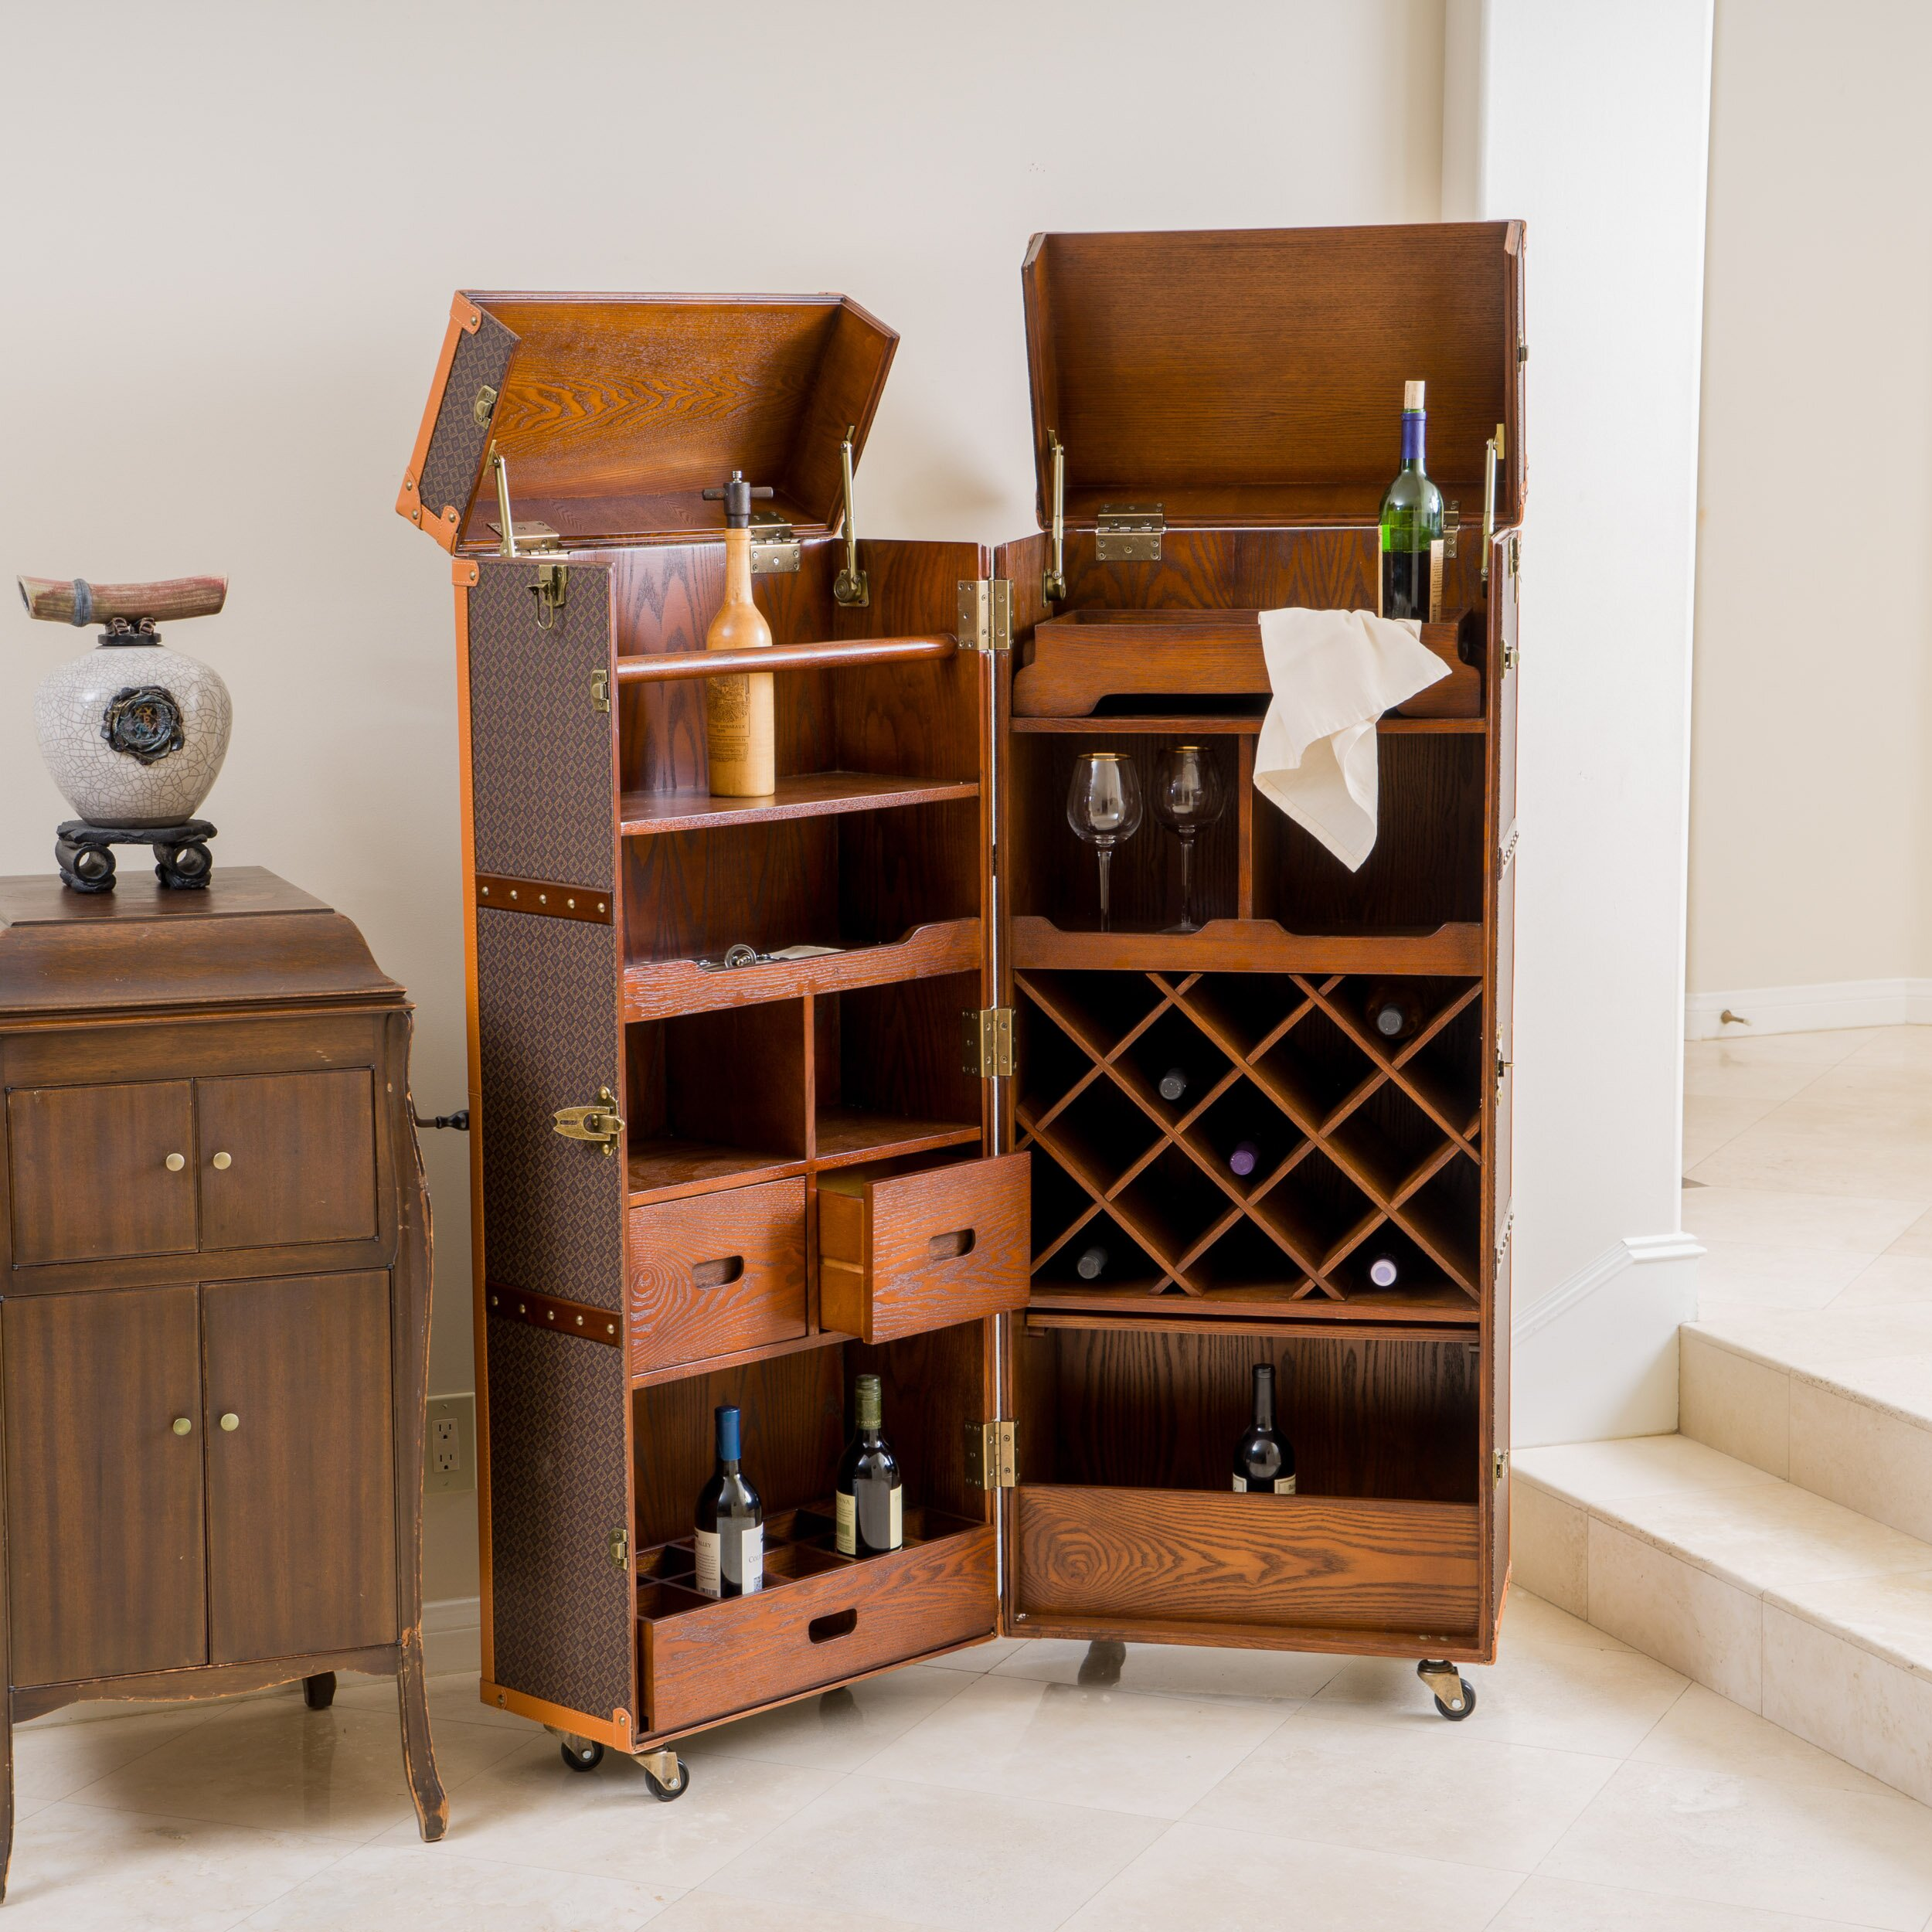 Home Loft Concepts Brisco Rolling Bar Cabinet with Wine ...